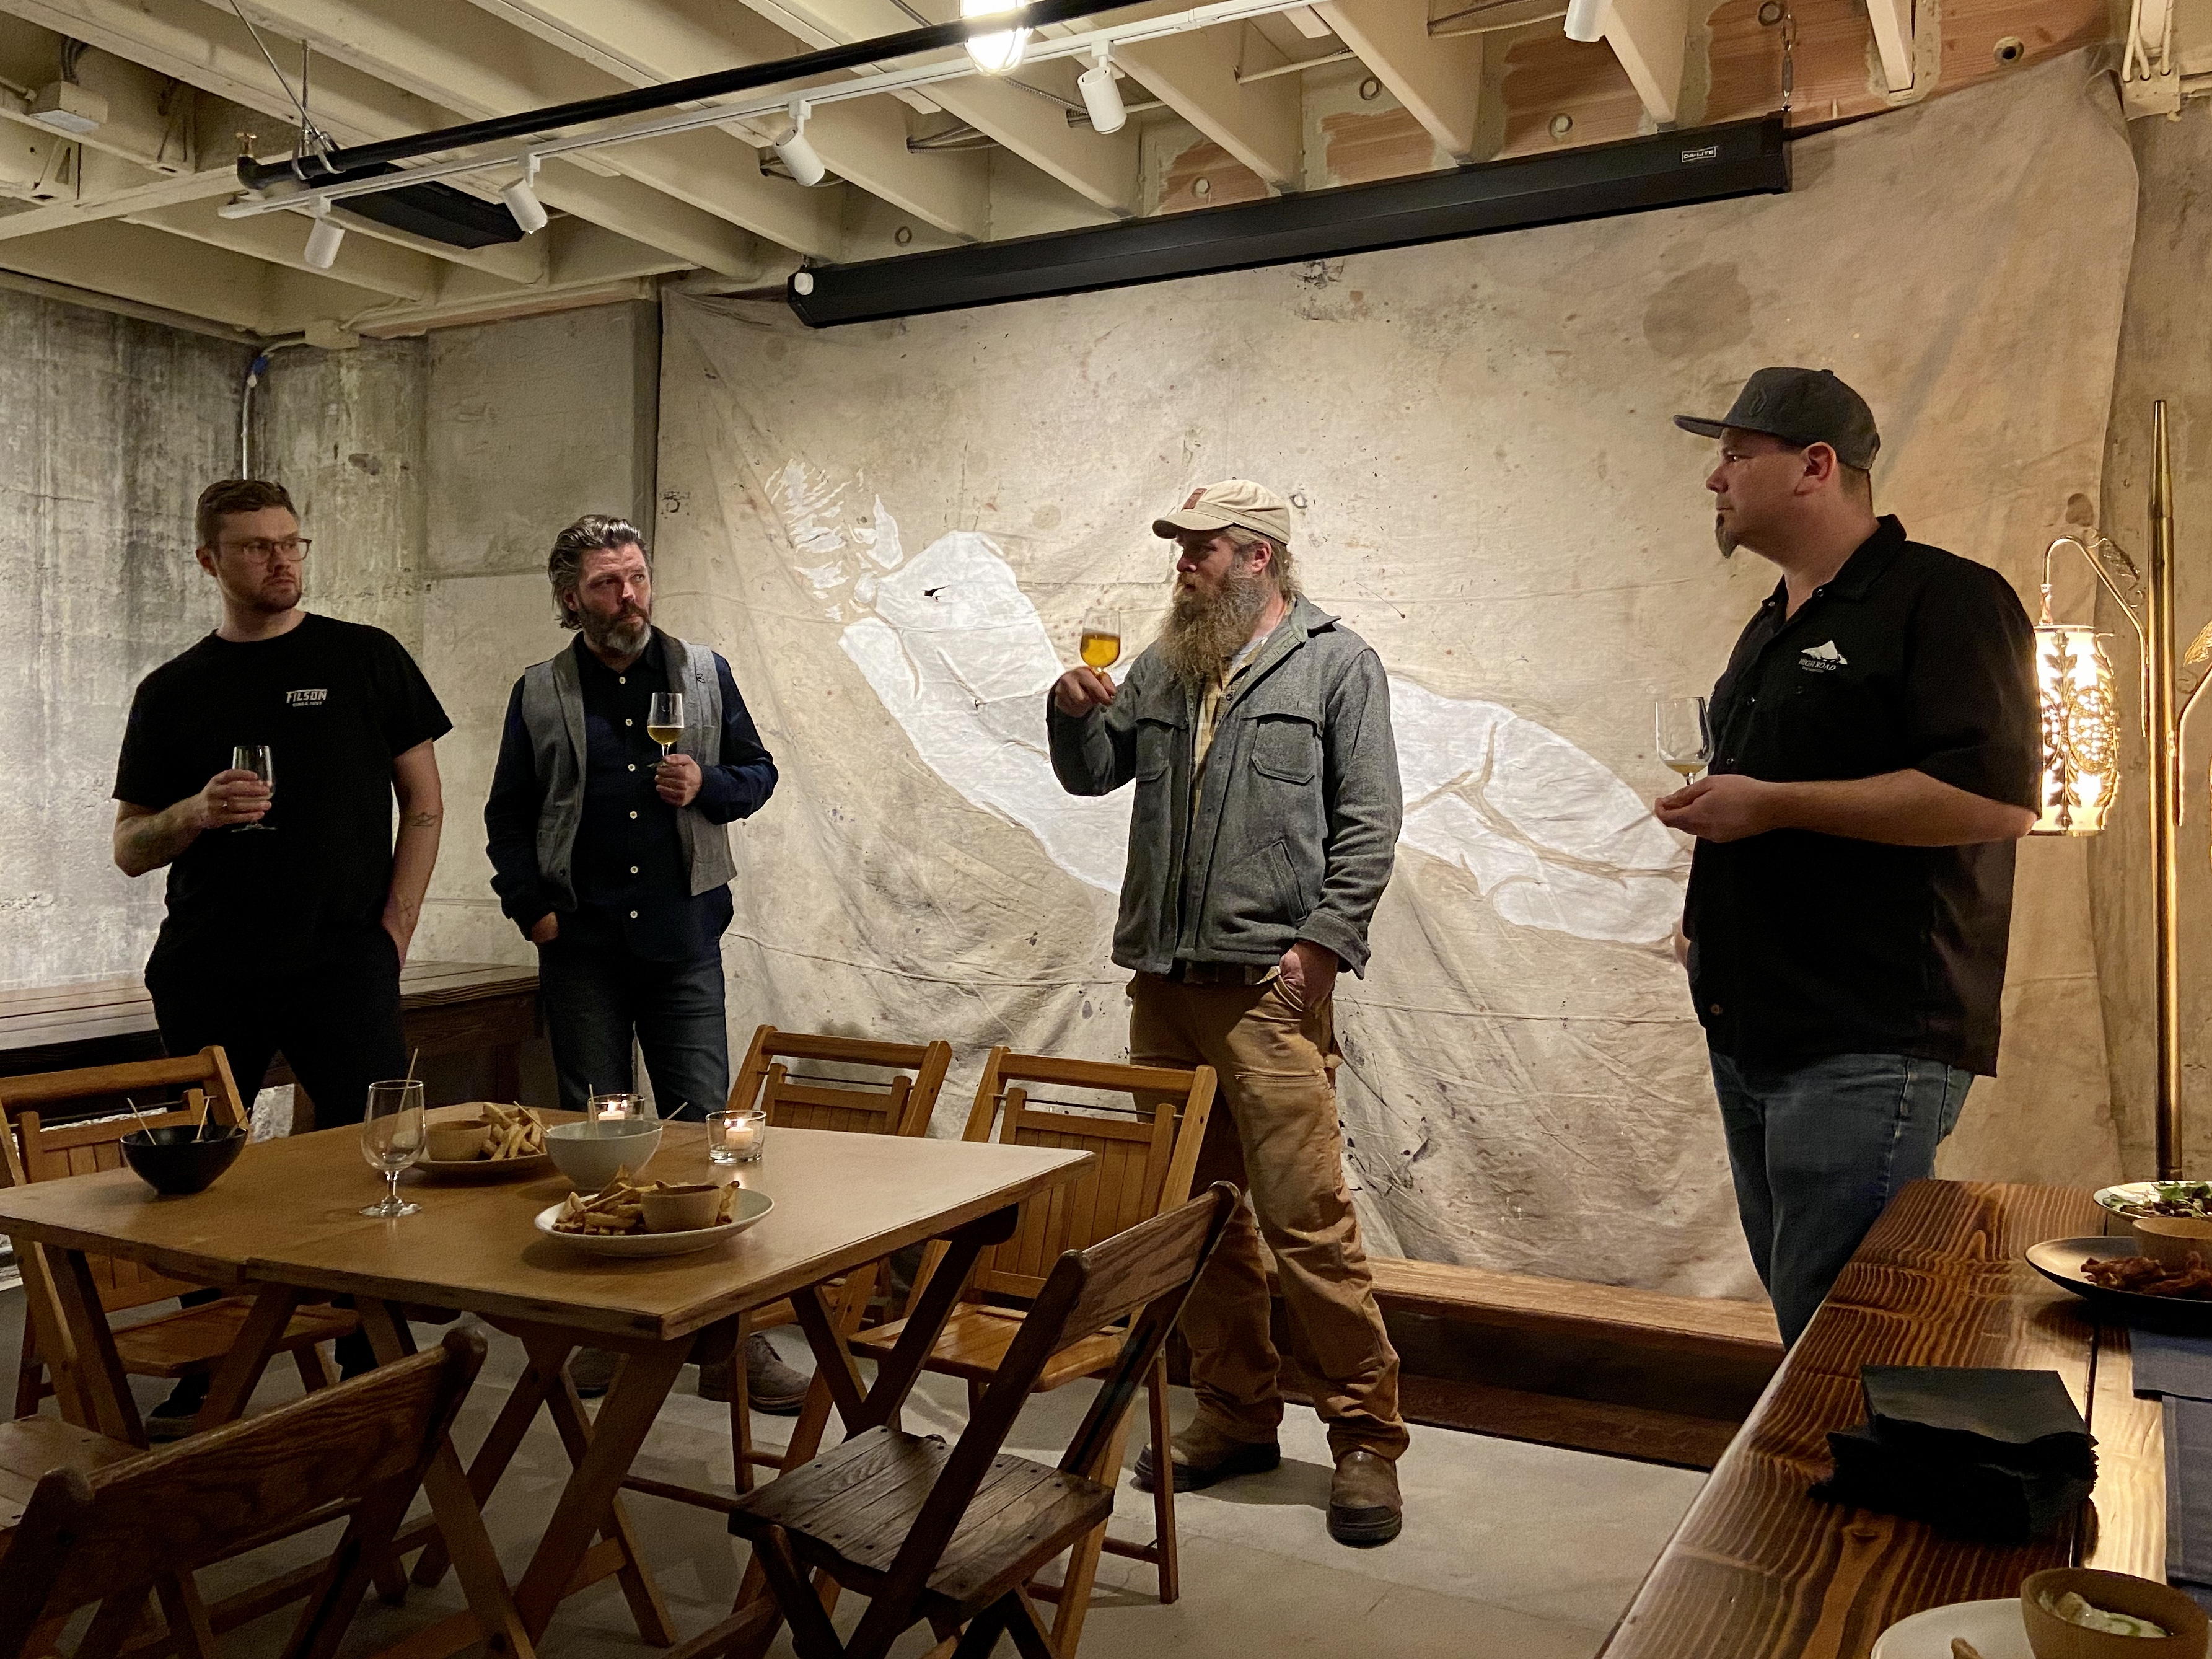 Olafur Agustsson, Kristinn Vilbergsson, Carston Haney, and Brandon Mikel discussing KEX Brewing beers that are brewed at Ross Island Brewing for its Oregon distribution.